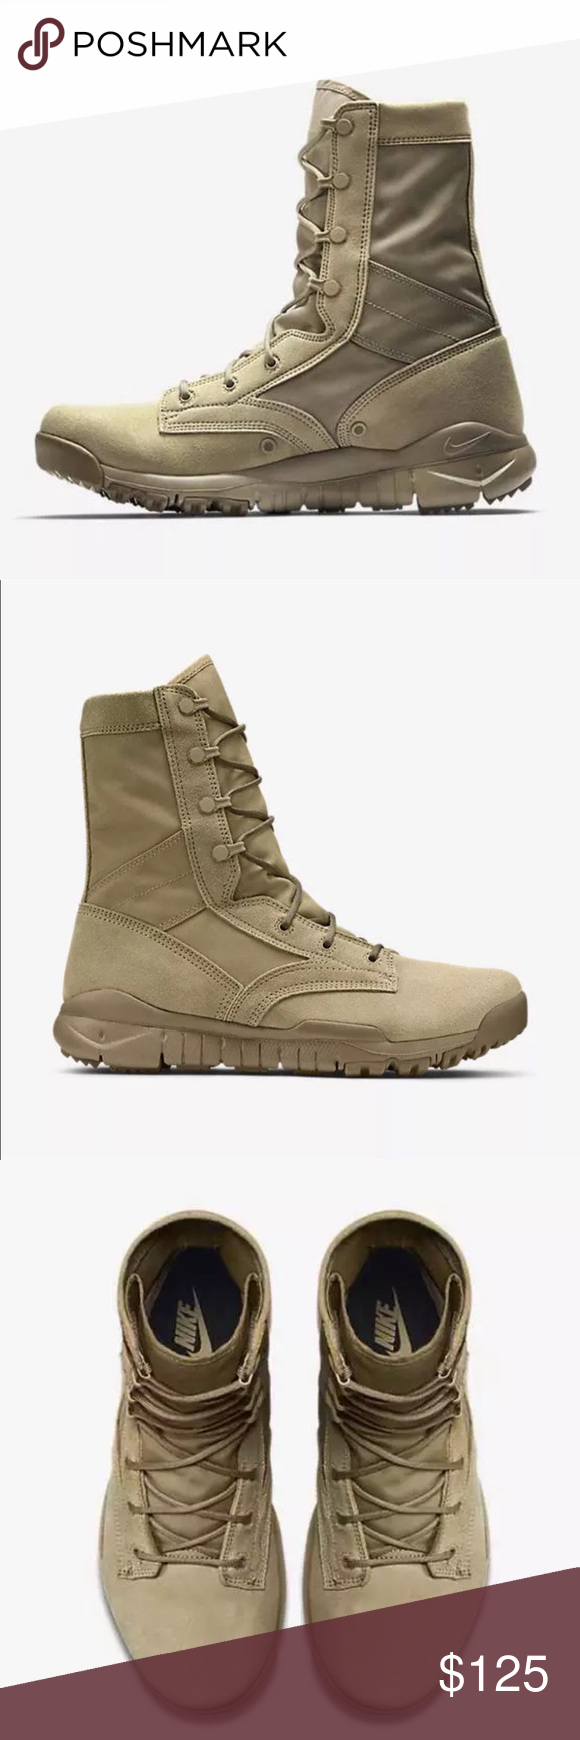 nike special field boot sizing